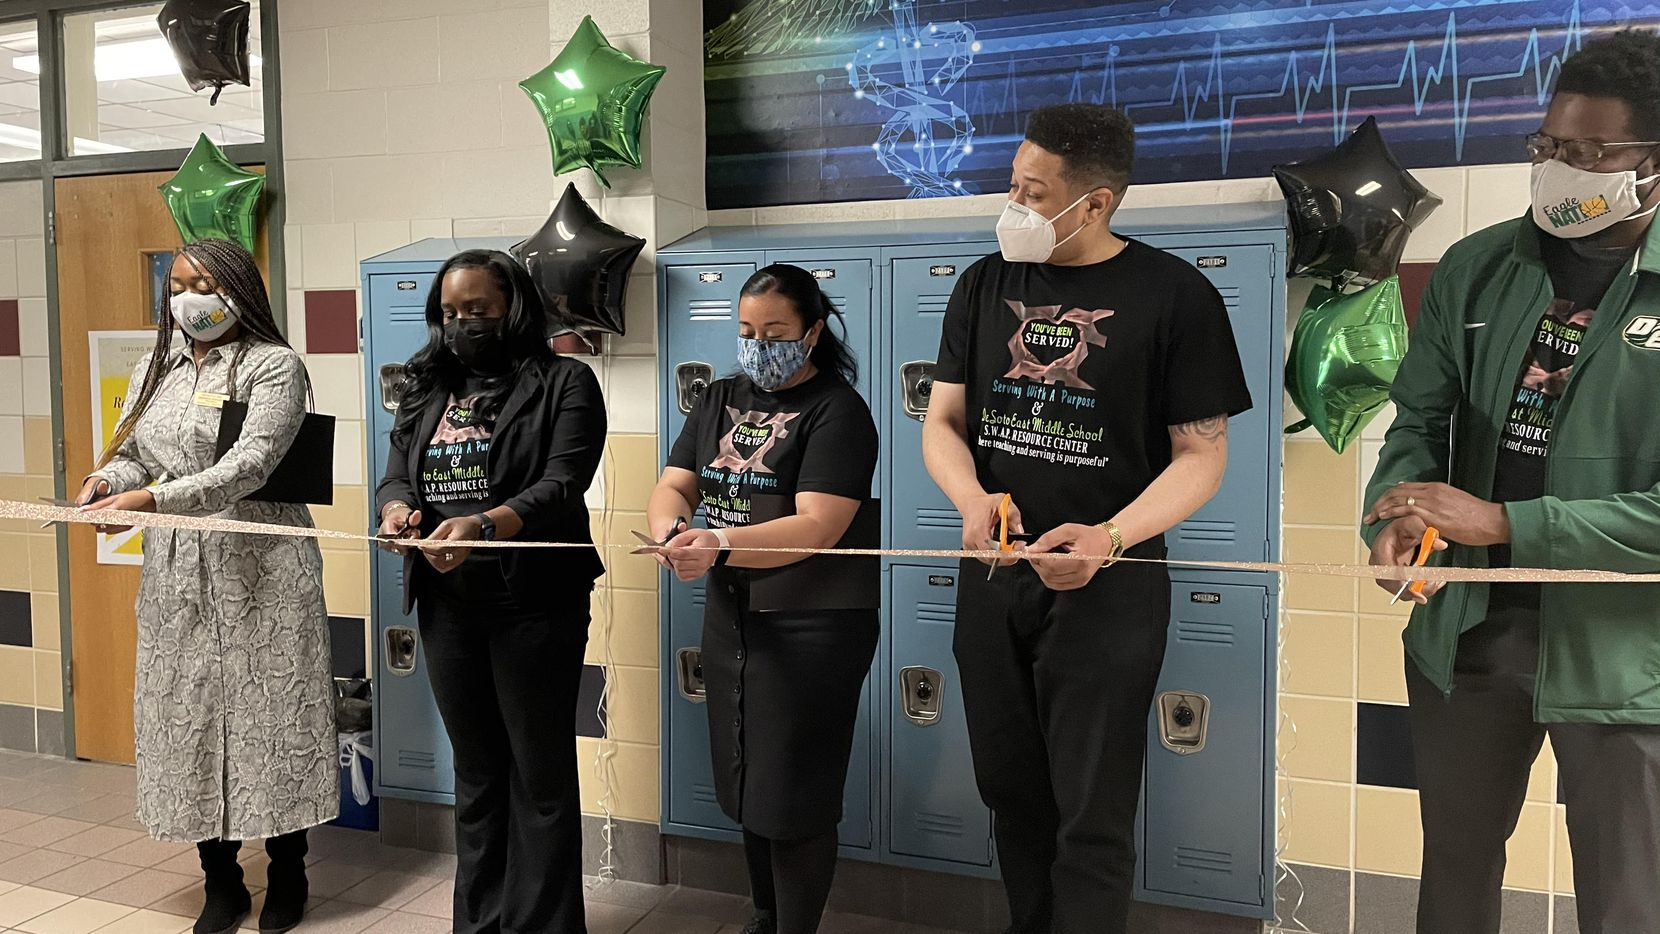 DeSoto ISD leadership cut the ribbon on a new partnership between the district and Serving with a Purpose. From left to right: DeSoto ISD Board President Amanda Sargent, teacher Melissa Toney, counselor Brittany Torres, campus principal Travis Anderson and Superintendent D'Andre Weaver.